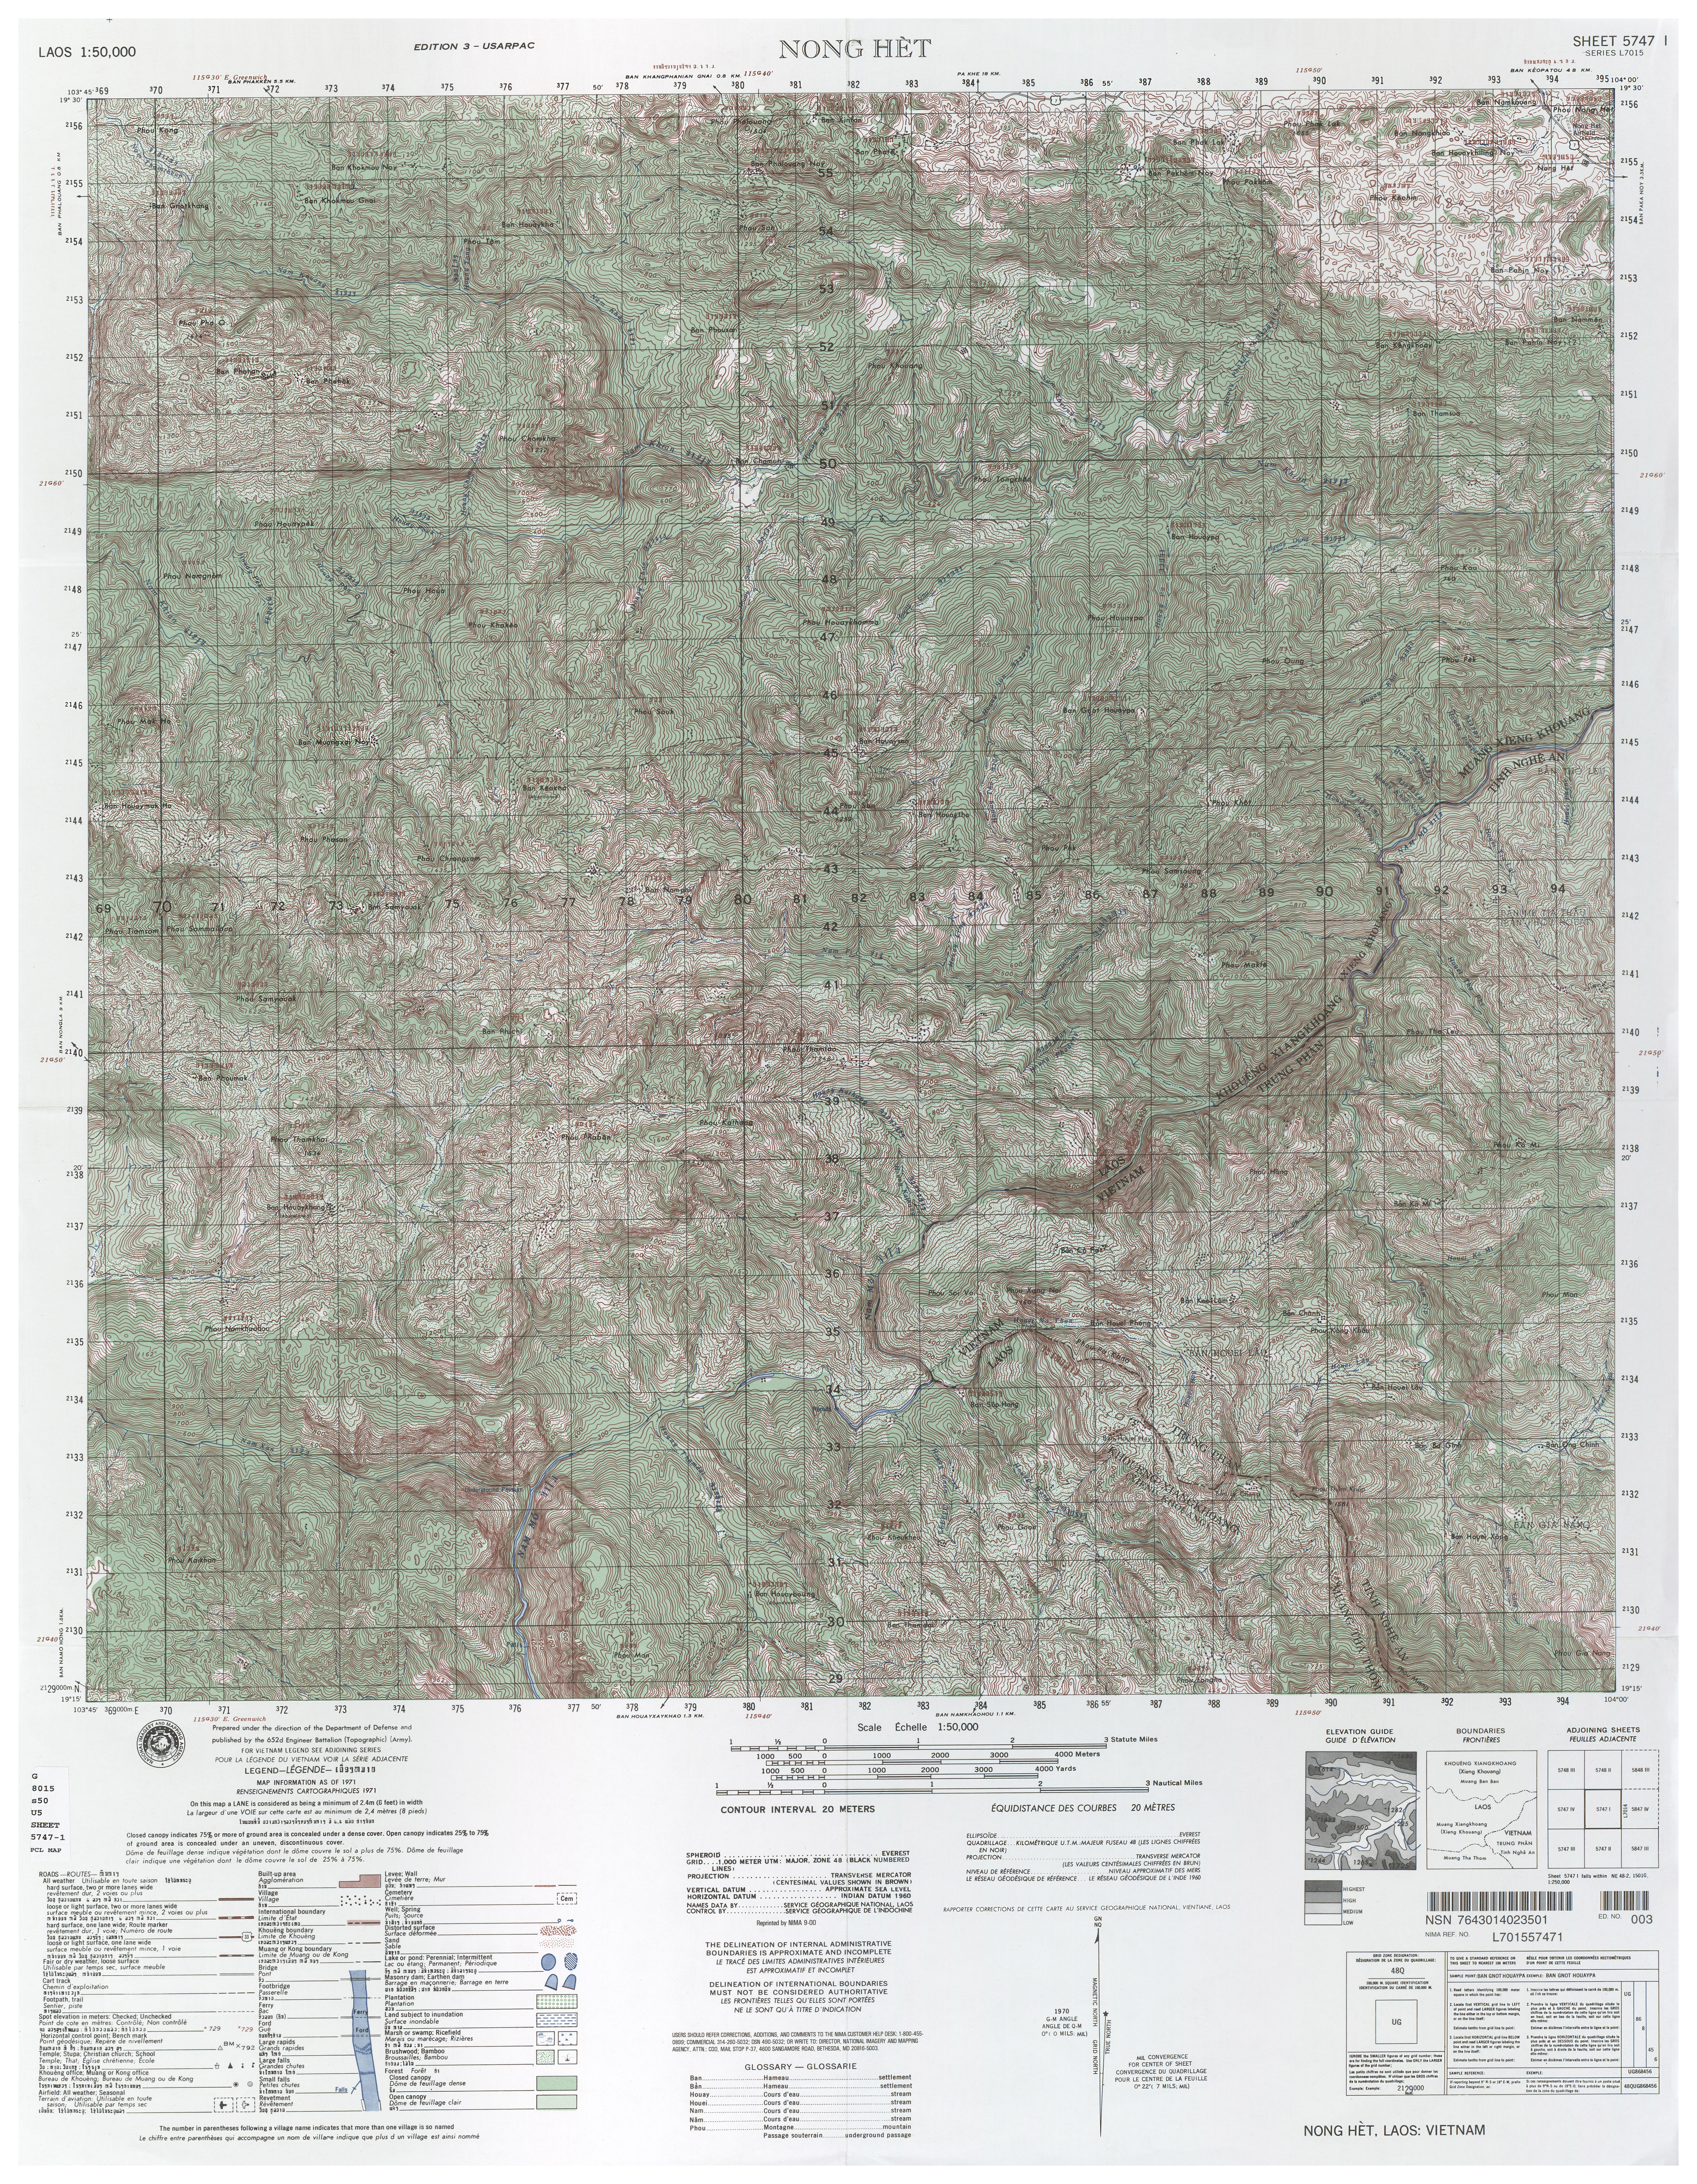 Laos Topographic Maps PerryCastañeda Map Collection UT - 1 50000 topo map us military